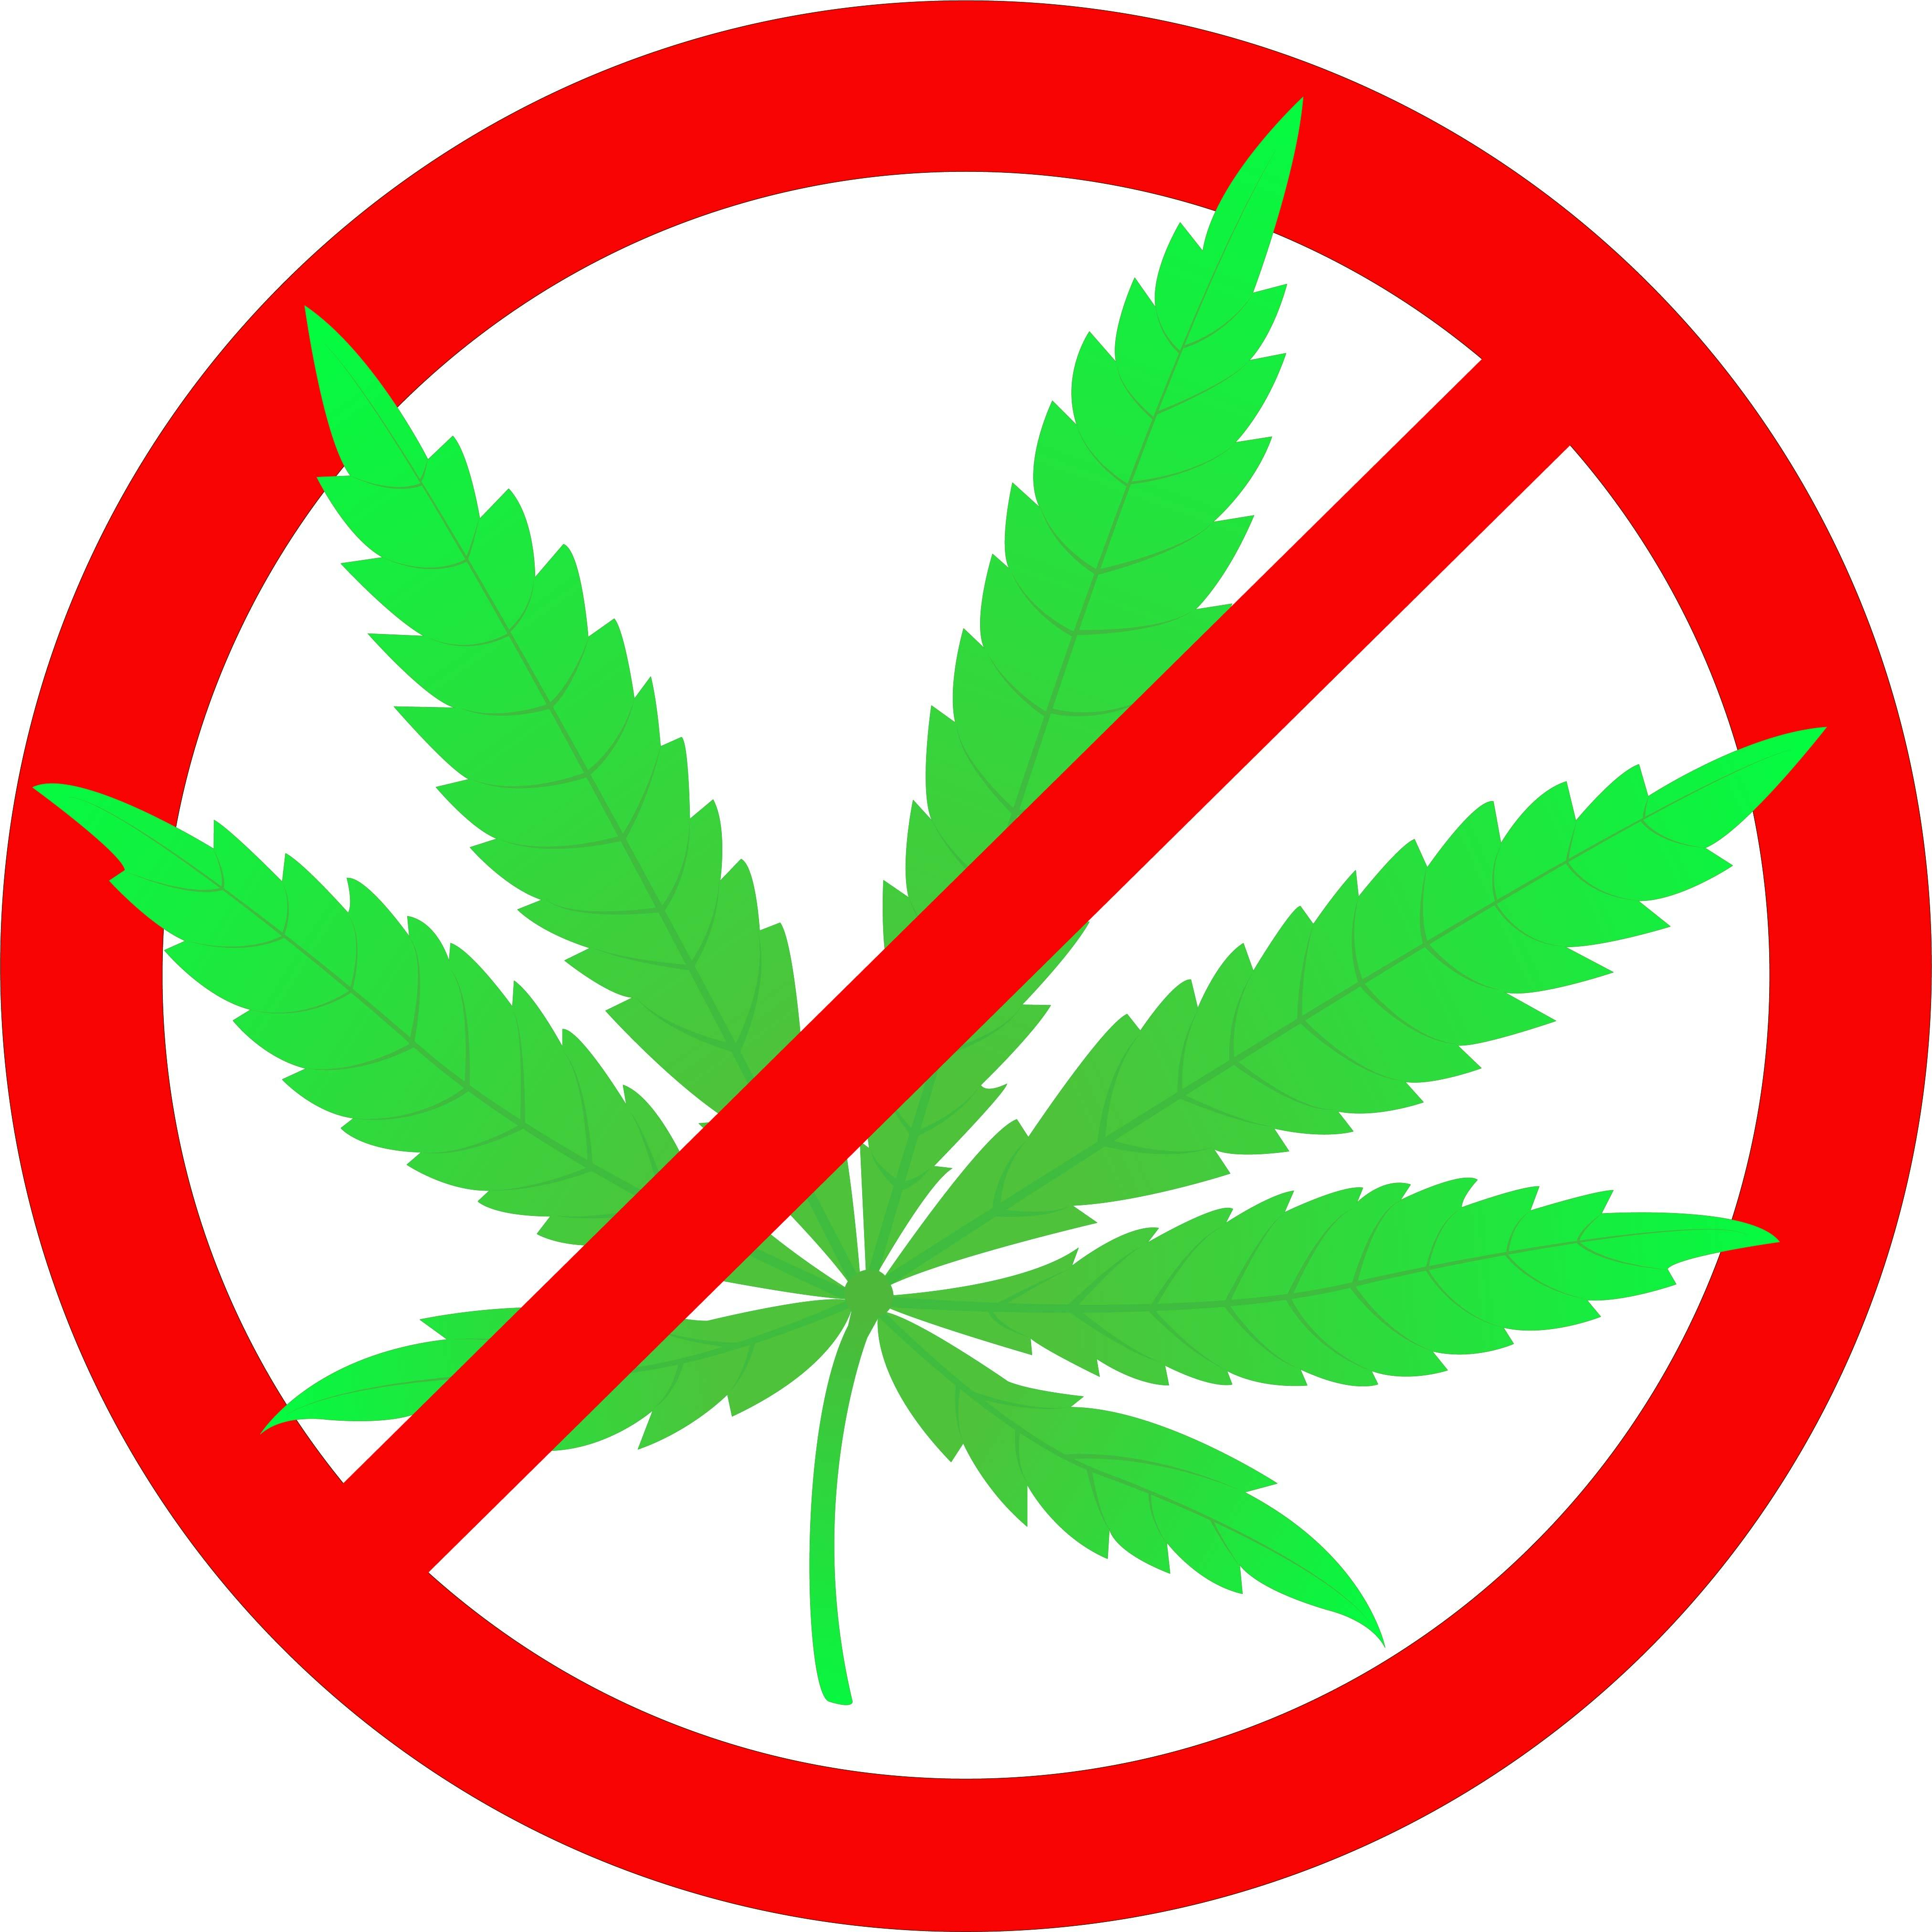 Image of a No Marijuana logo